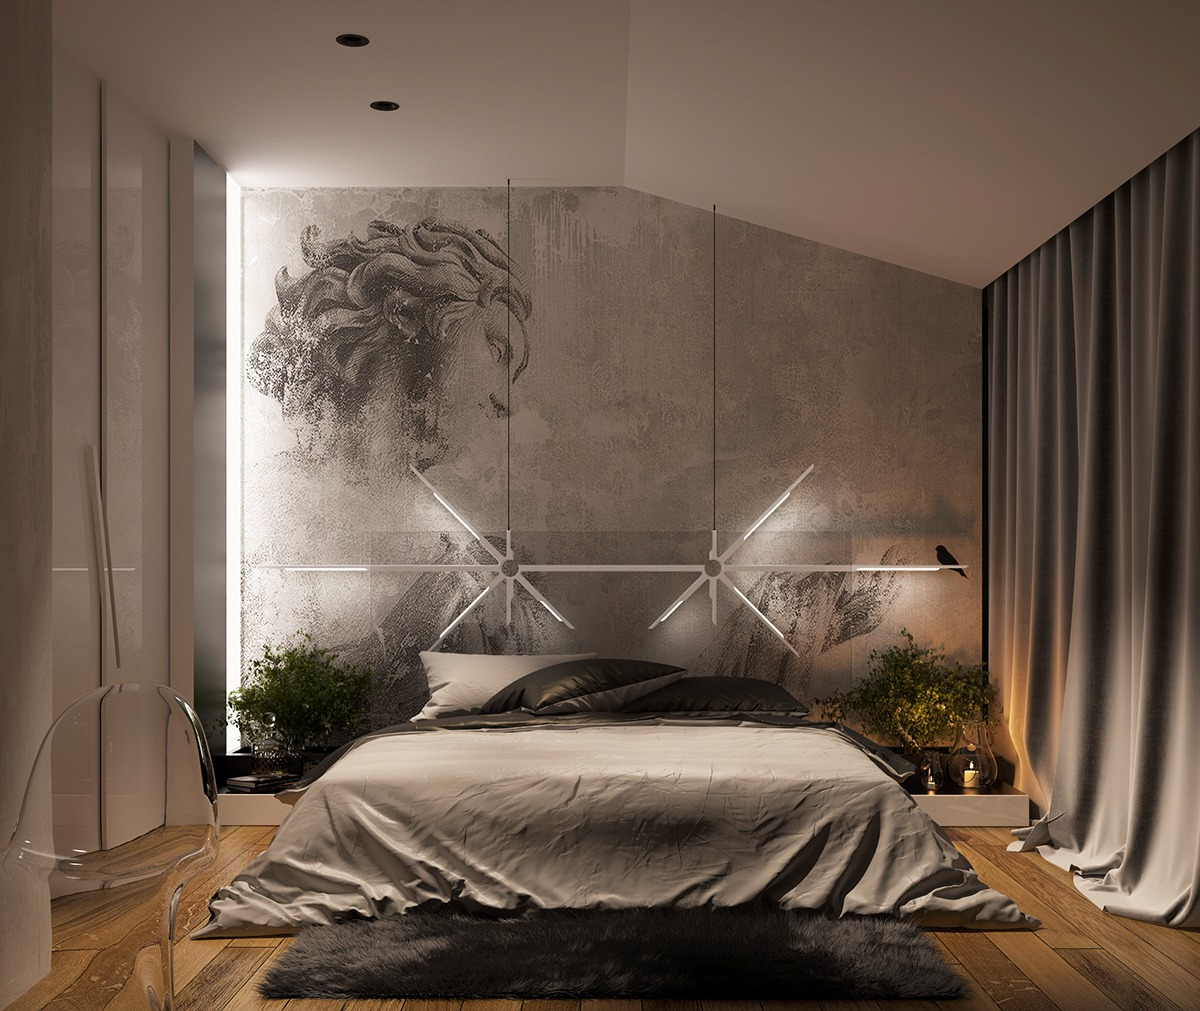 Wall Design Ideas With Pictures : Concrete wall designs striking bedrooms that use